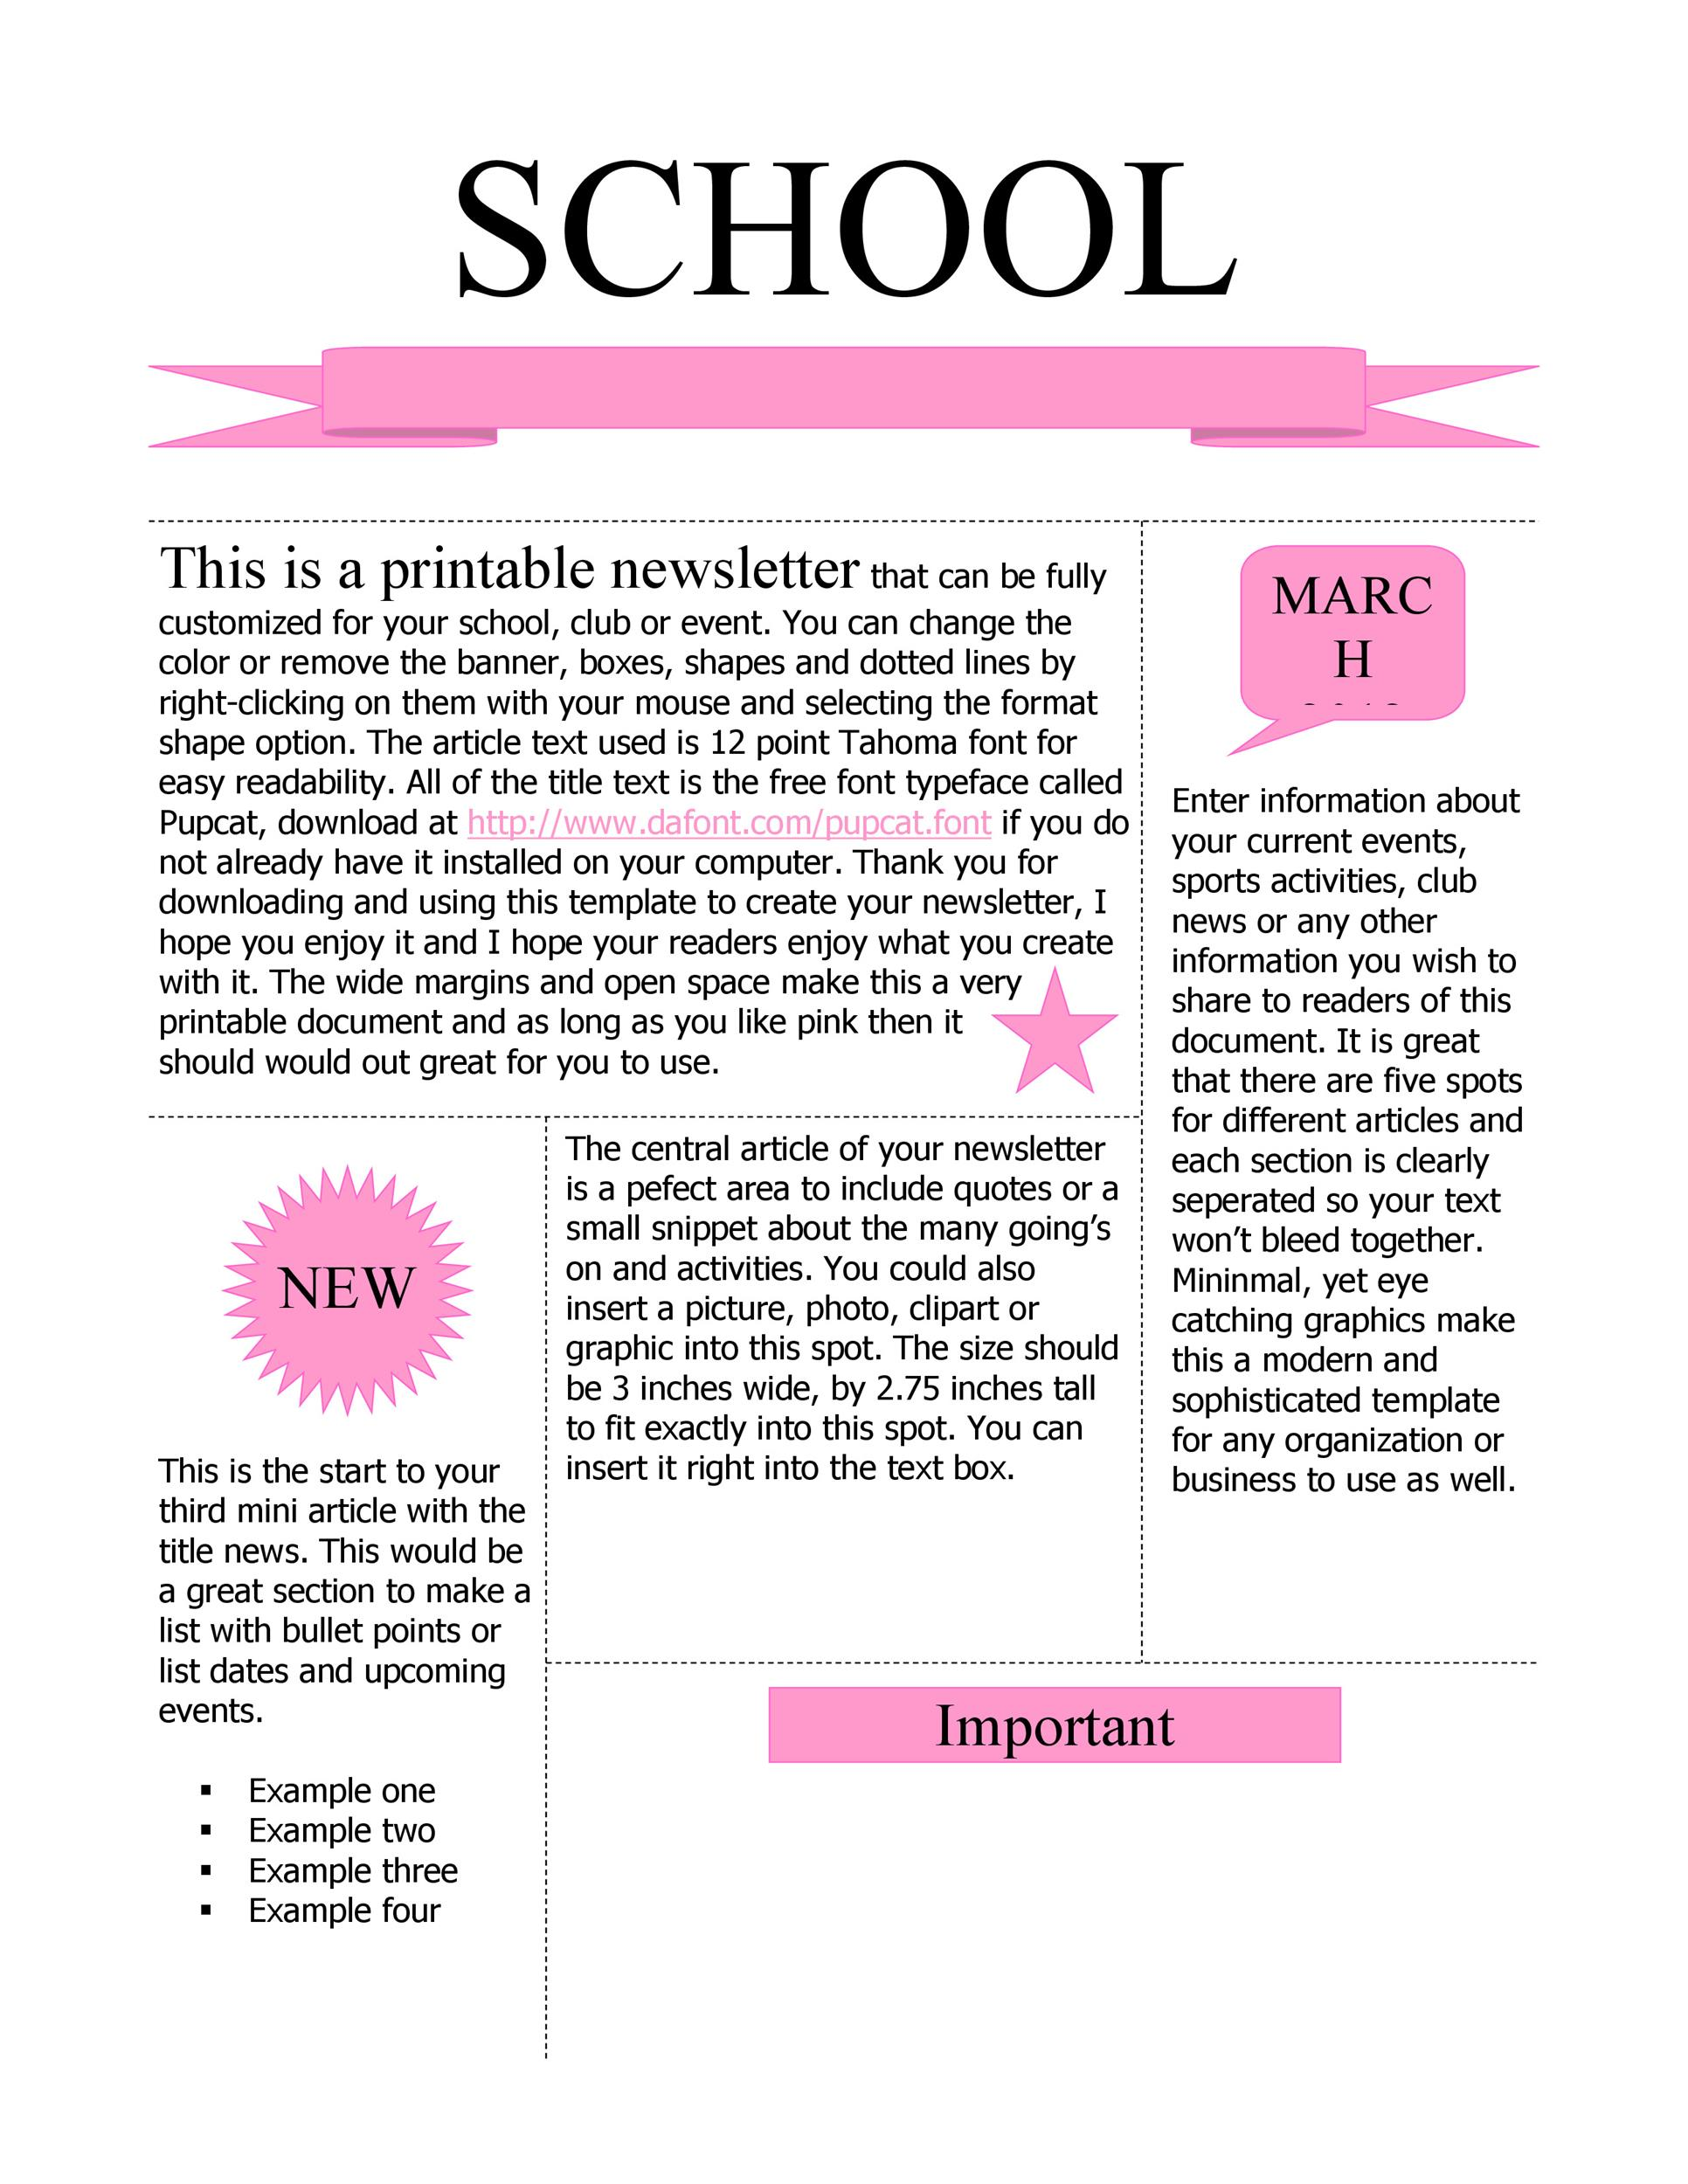 FREE Newsletter Templates For Work School And Classroom - Free newsletter templates for teachers